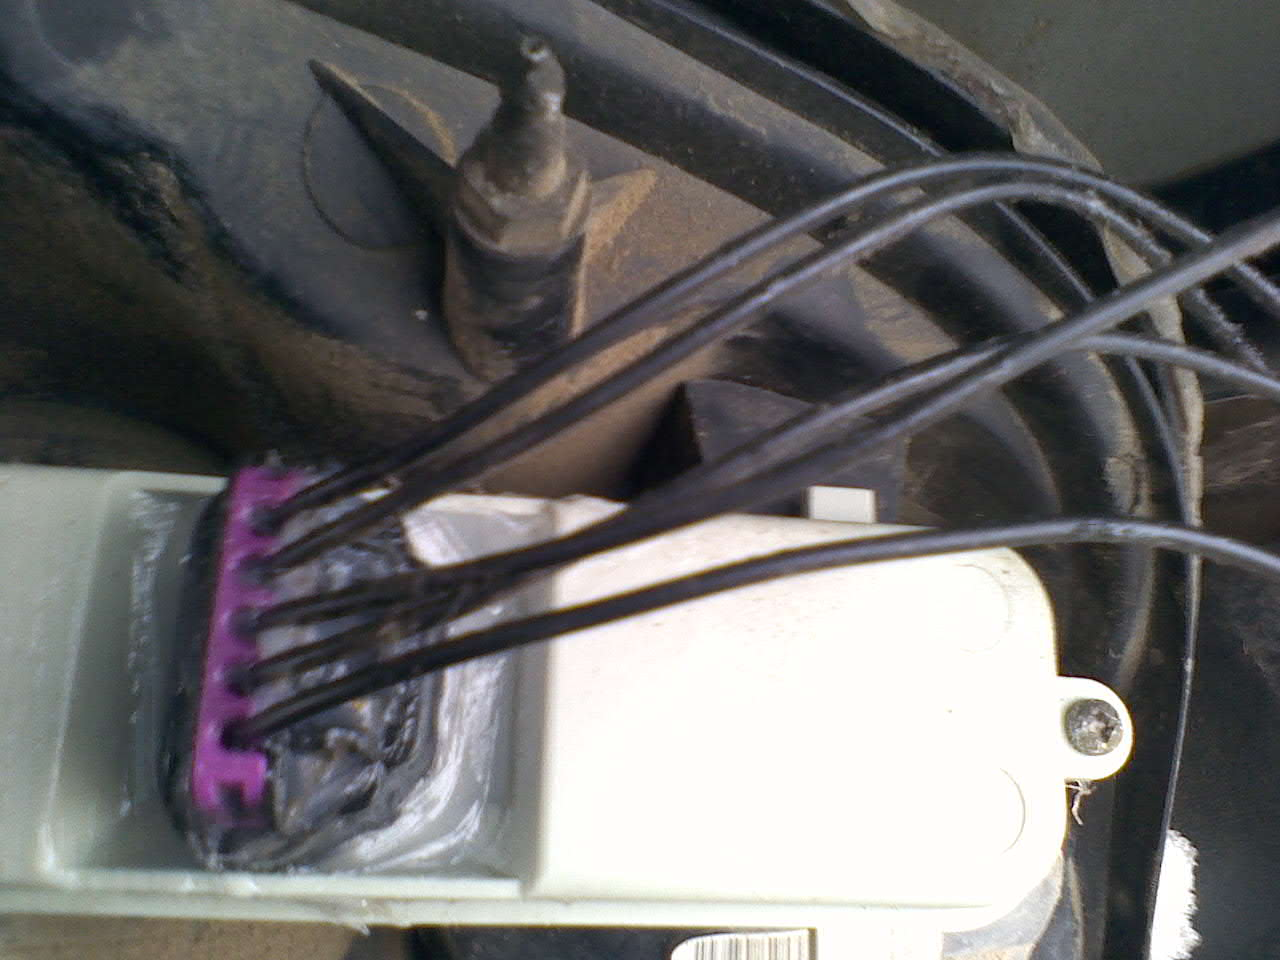 2012 01 20_181459_0120121112 i have a 2003 chevy trailblazer i need to know the wiring colors 2003 chevy trailblazer tail light wiring harness at mifinder.co